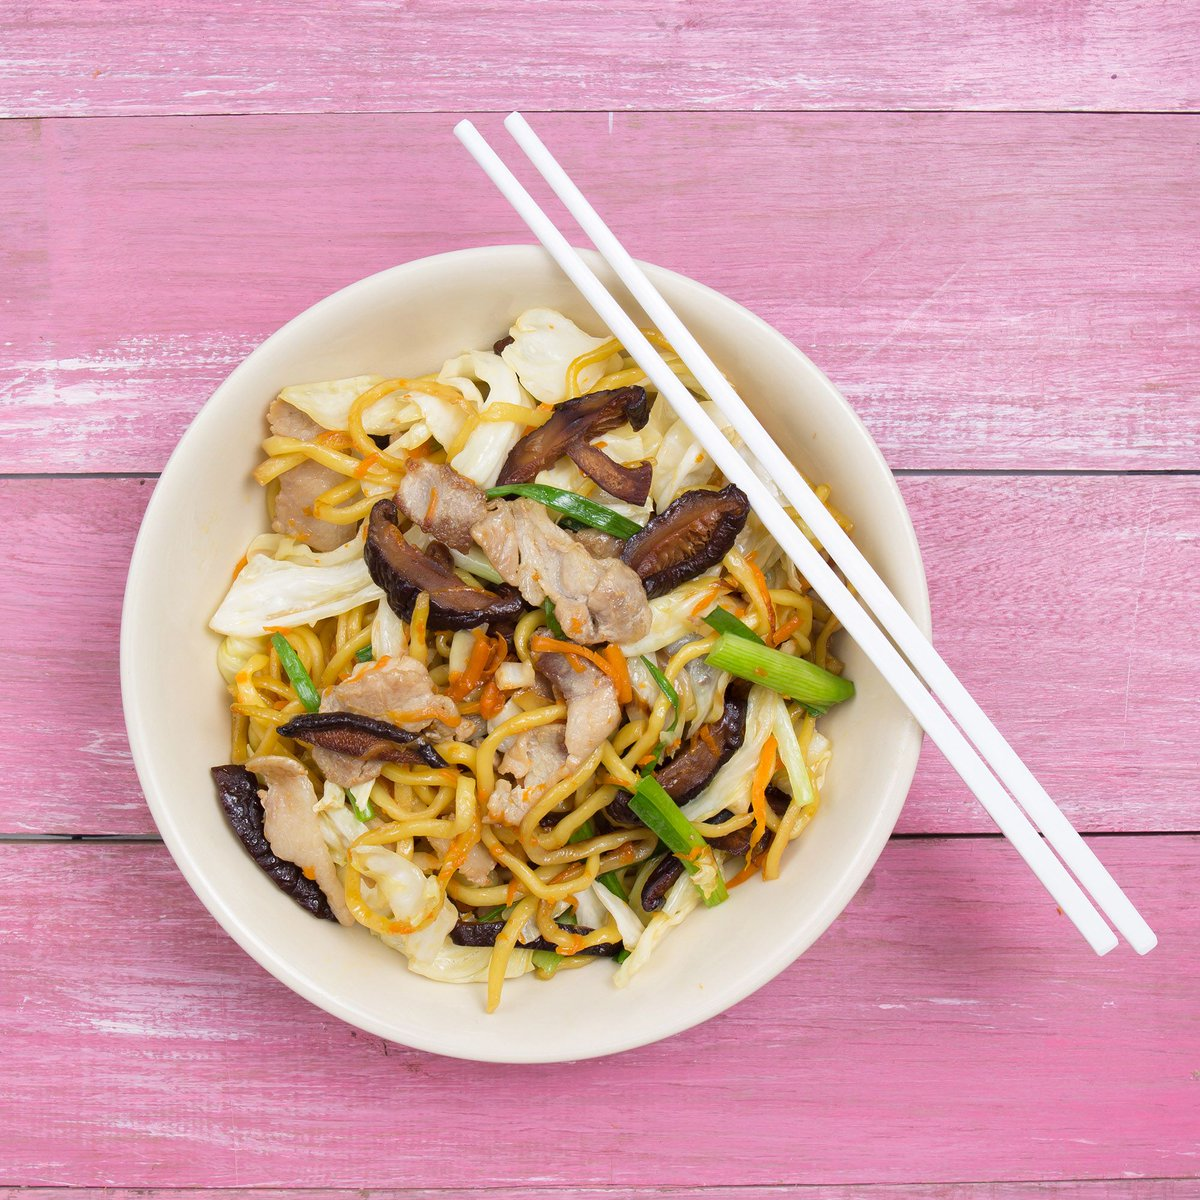 Did you enjoy the Tokyo Olympics? At Caple, we are big fans of this country & the cuisine. So, our national trainer Jo has come up with five Japanese-inspired recipe ideas which you can try at home to tantalise your tastebuds: buff.ly/3DcUZvW #recipes #recipeblog